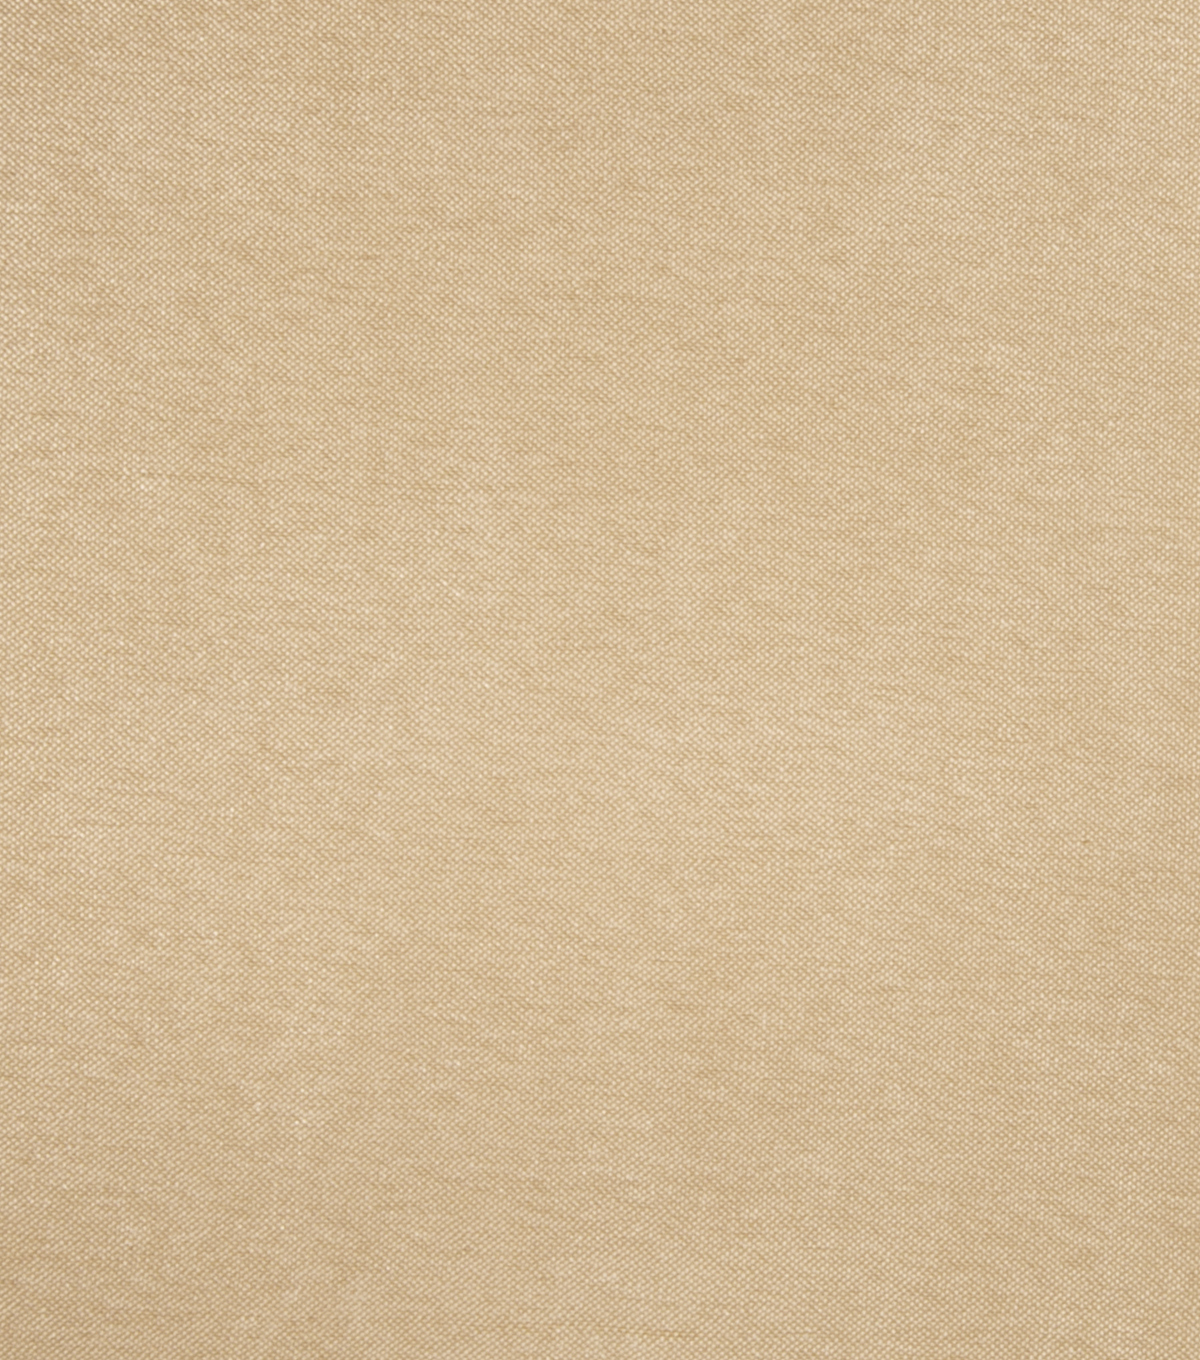 Home Decor 8\u0022x8\u0022 Fabric Swatch-Jaclyn Smith Cobblestone Boucle Beige